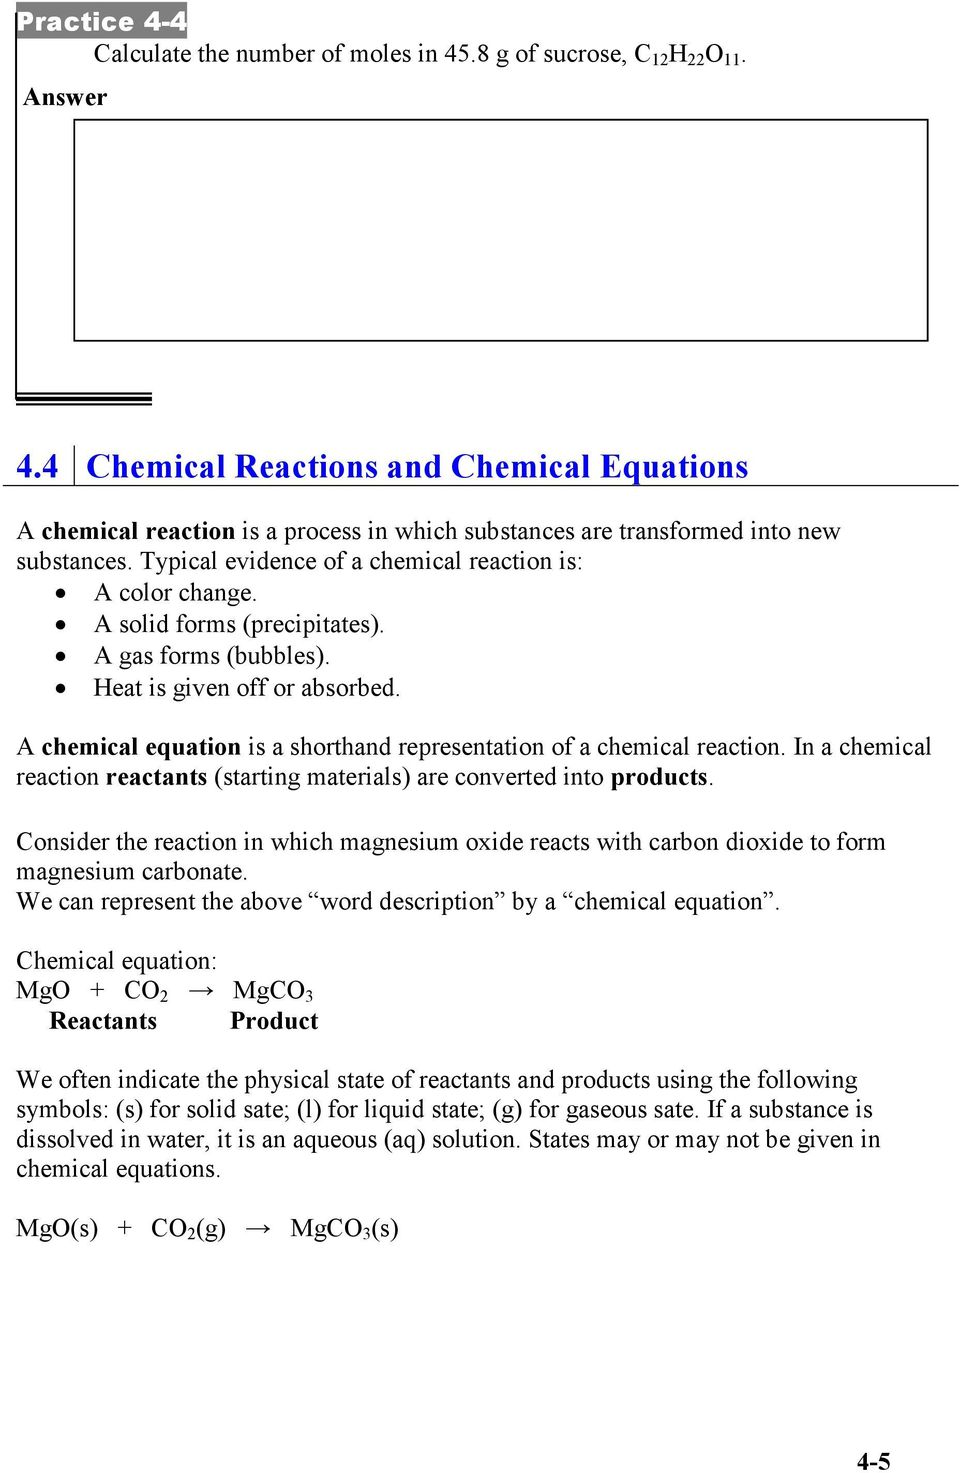 Typical evidence of a chemical reaction is: A color change. A solid forms (precipitates). A gas forms (bubbles). Heat is given off or absorbed.